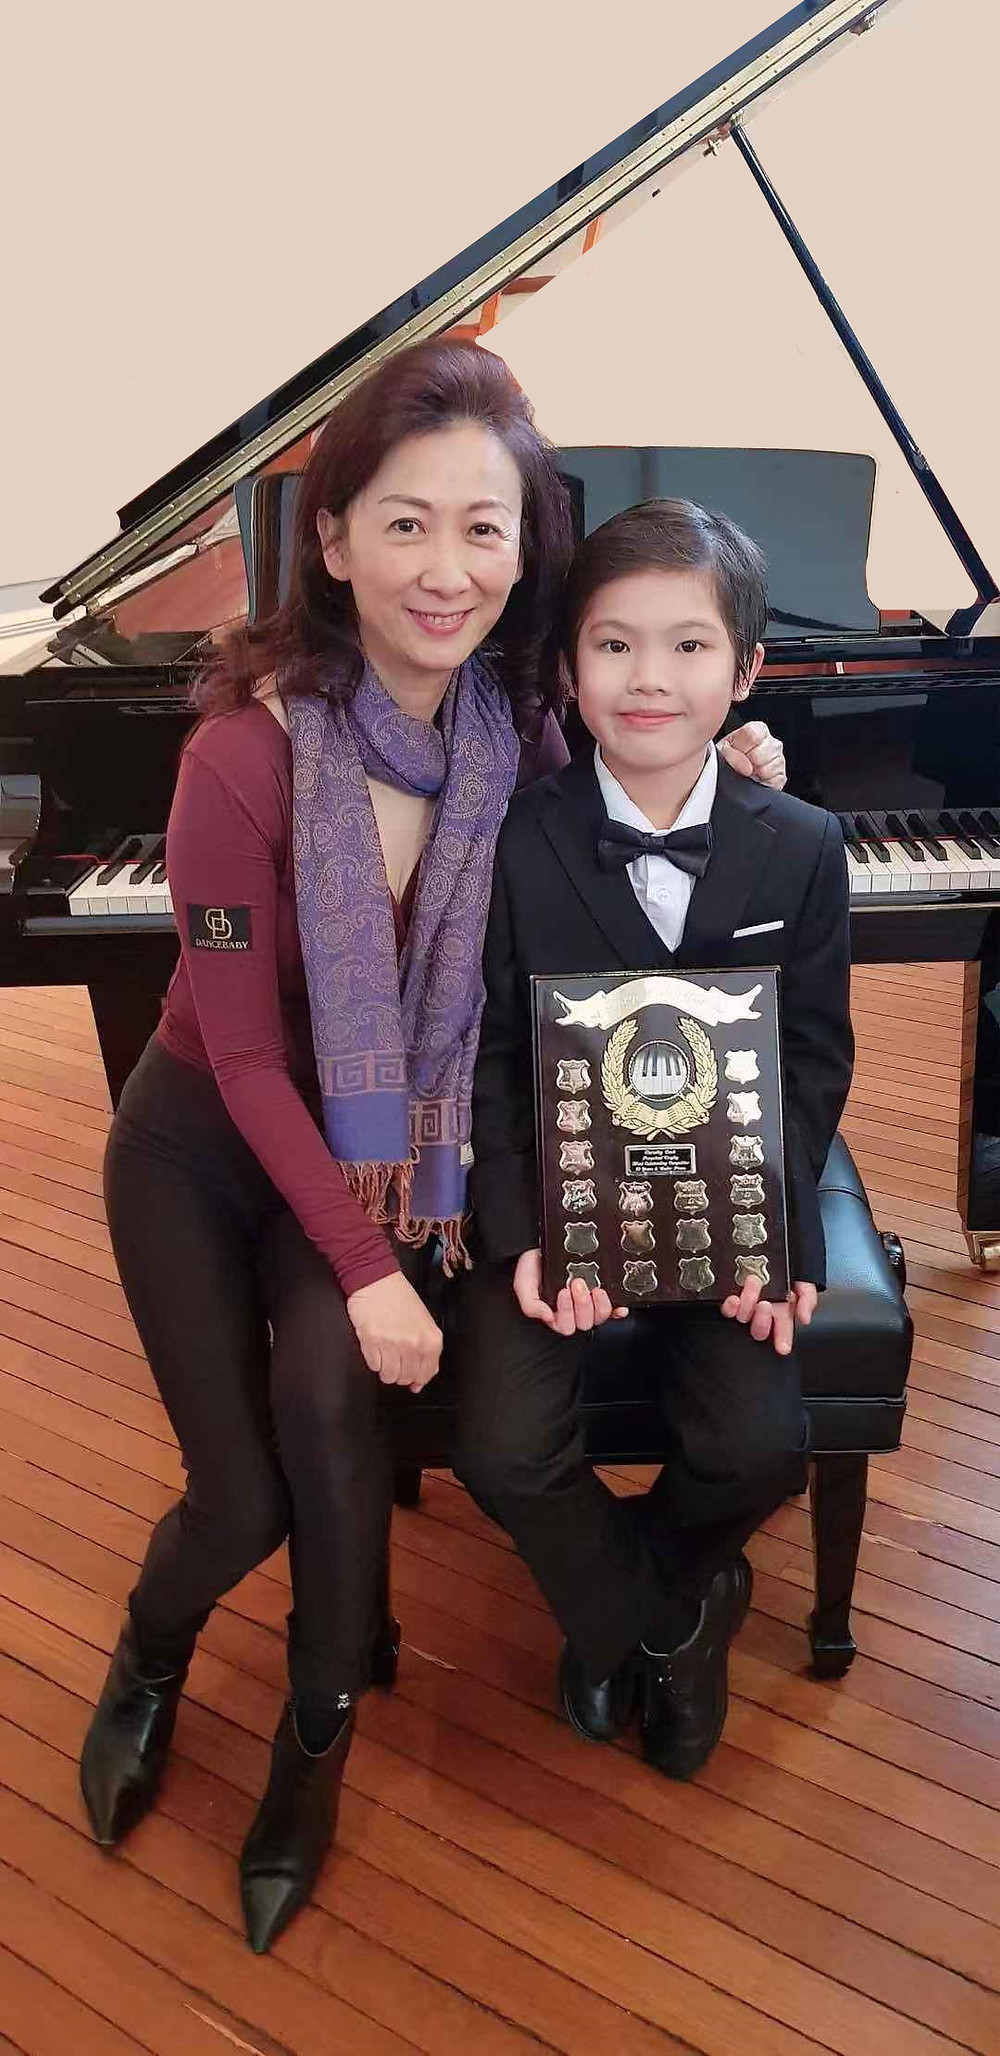 """Isaiah with his piano teacher Lily who was at the Eisteddfod to support his performance. Isaiah was most appreciative of this dedicated teacher, as he said: """"I received the most outstanding award because I have the most outstanding piano teacher."""""""